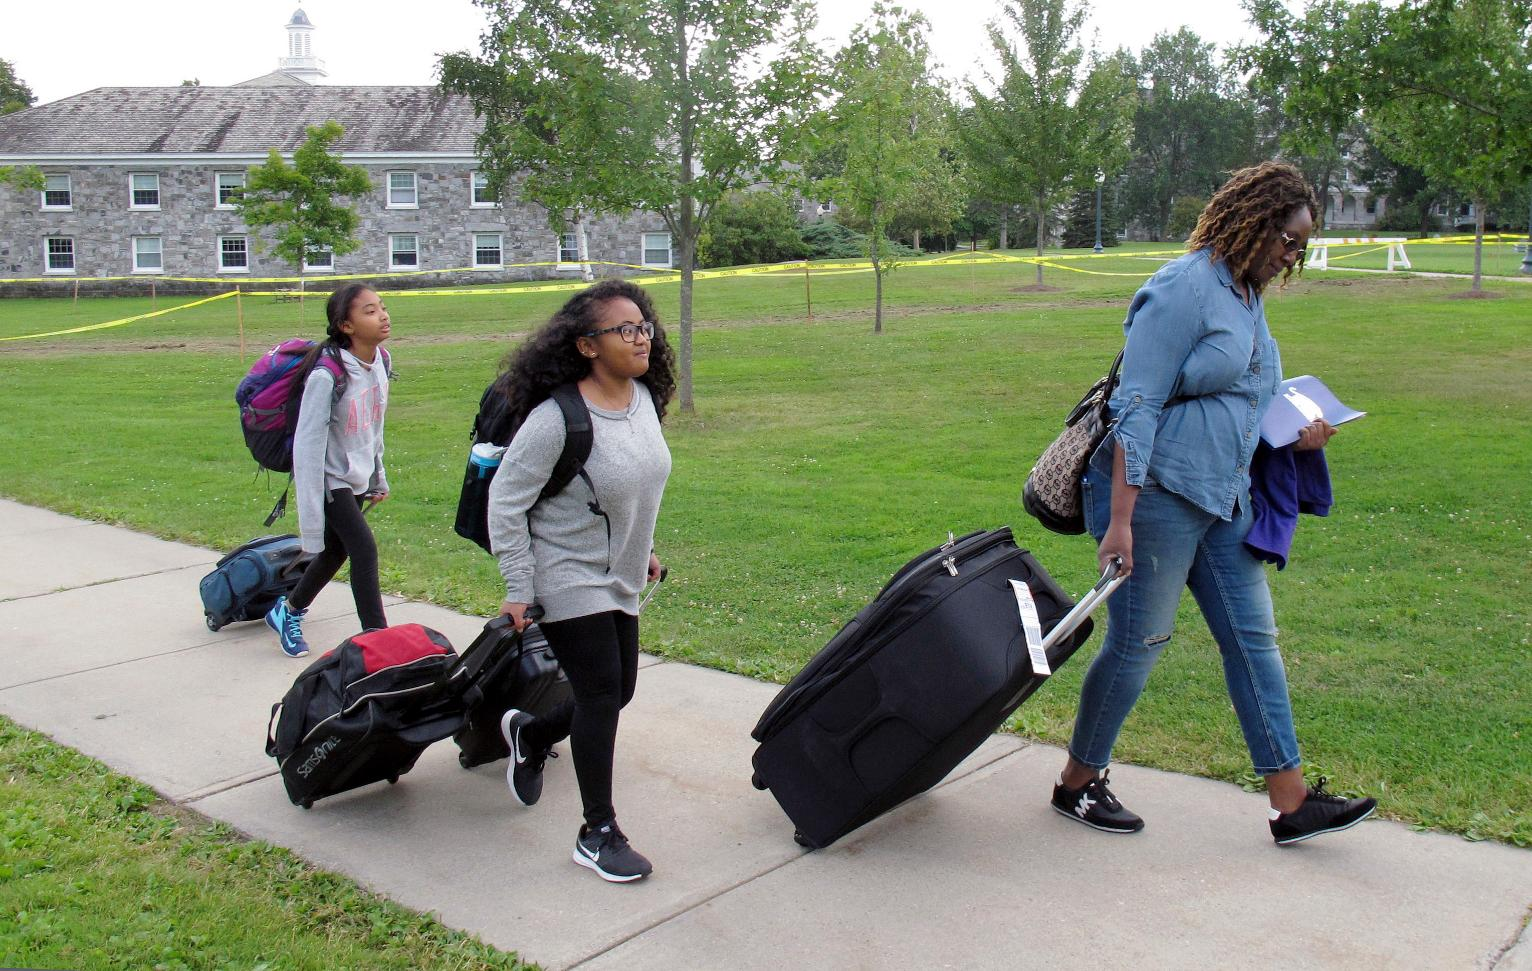 Best Colleges In Minnesota >> Colleges Work to Help First-Generation Students Succeed | Maine News | US News